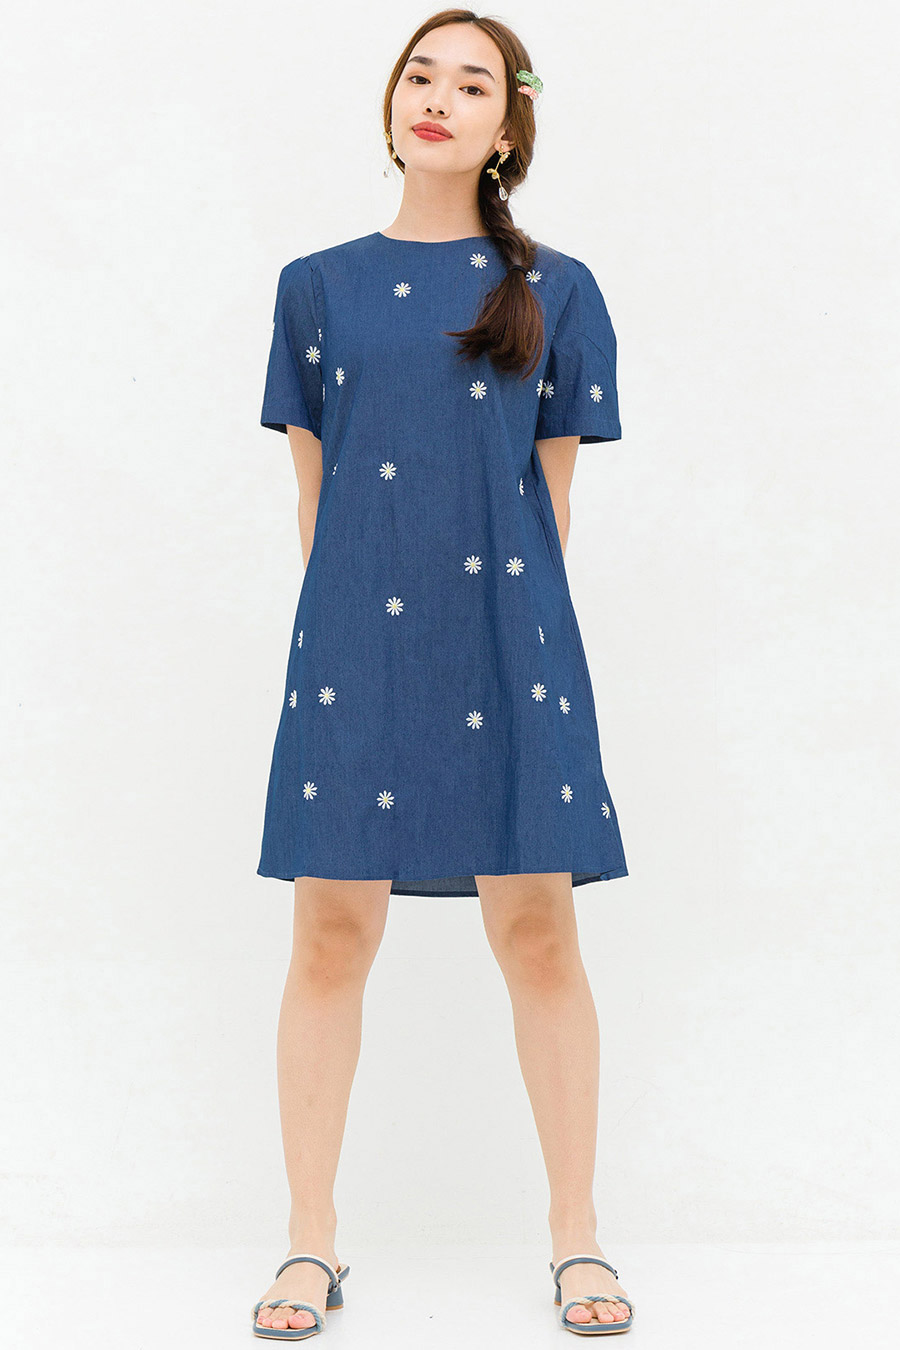 ELLIOT DRESS - PERRY FLEUR